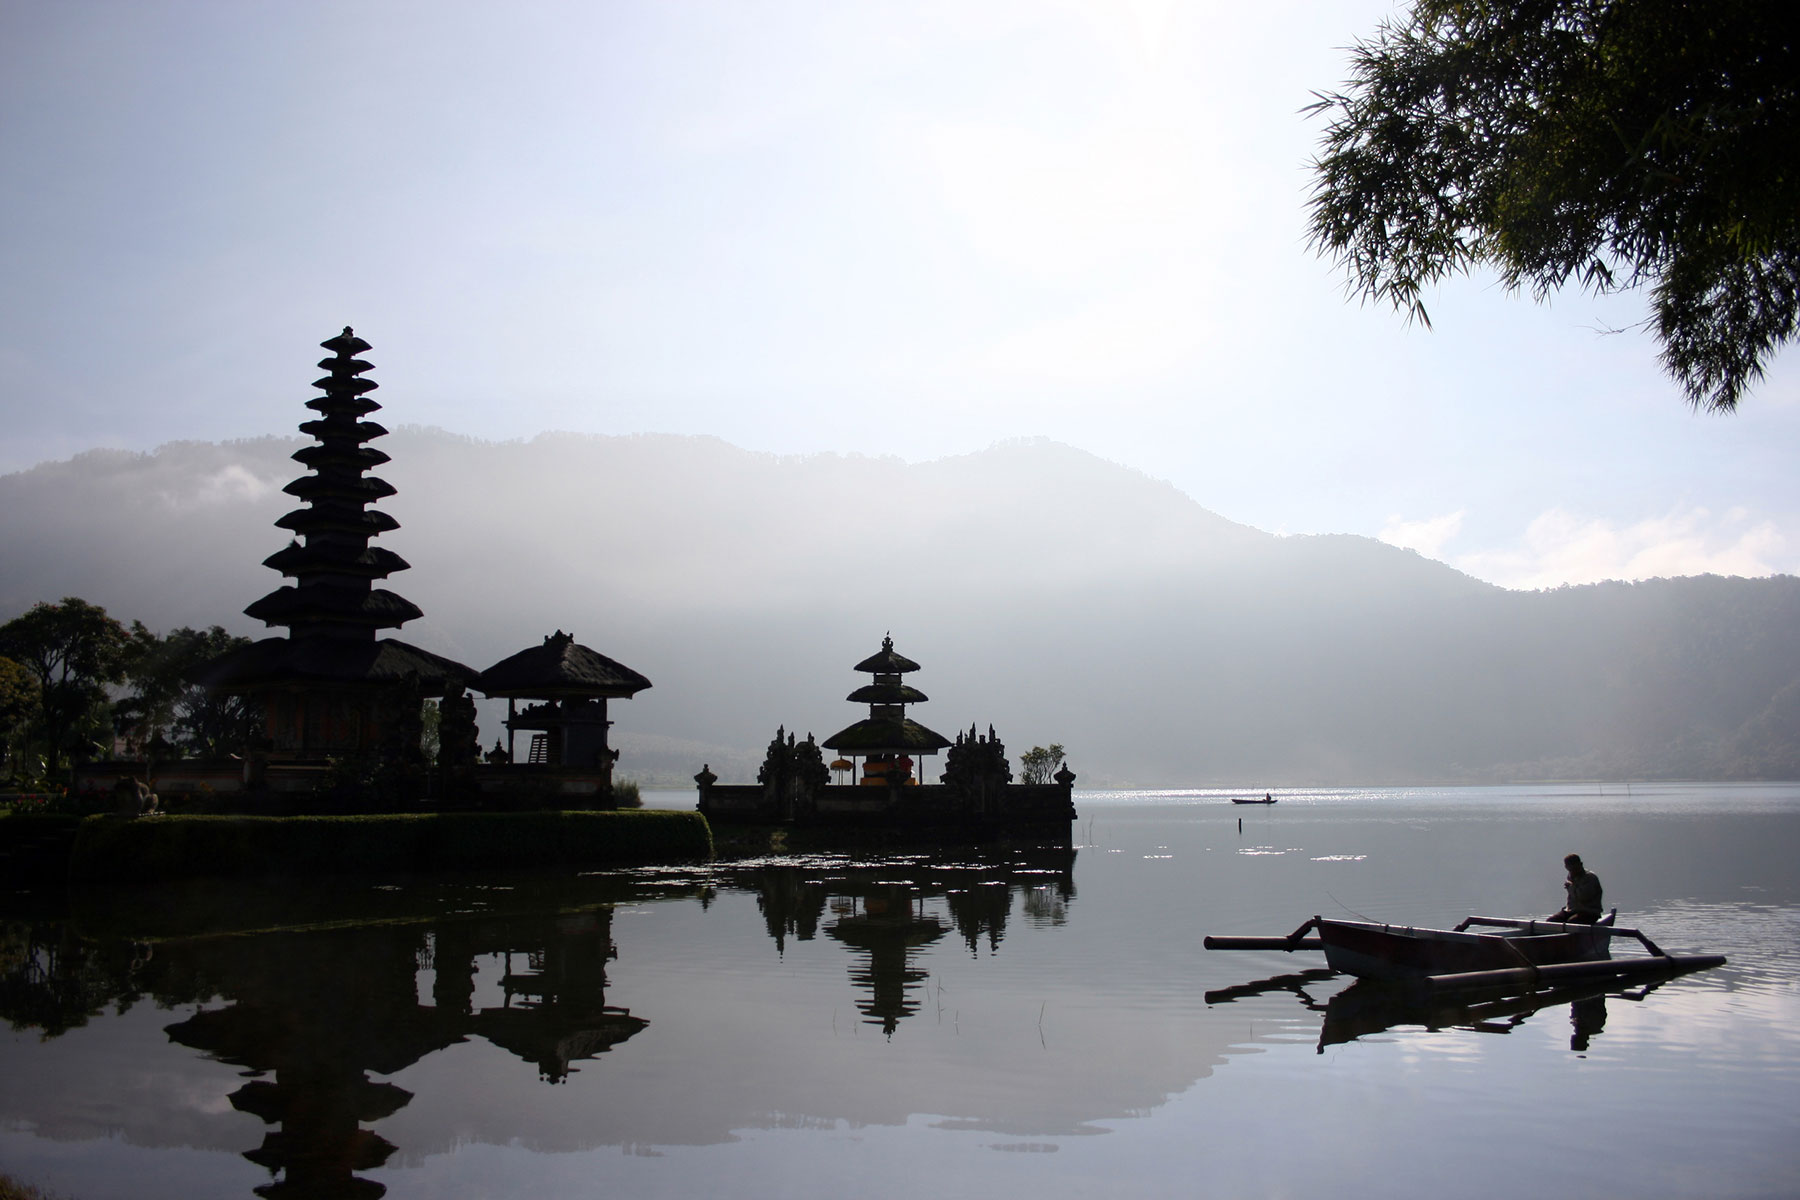 Fisherman in boat early morning with temple in the background